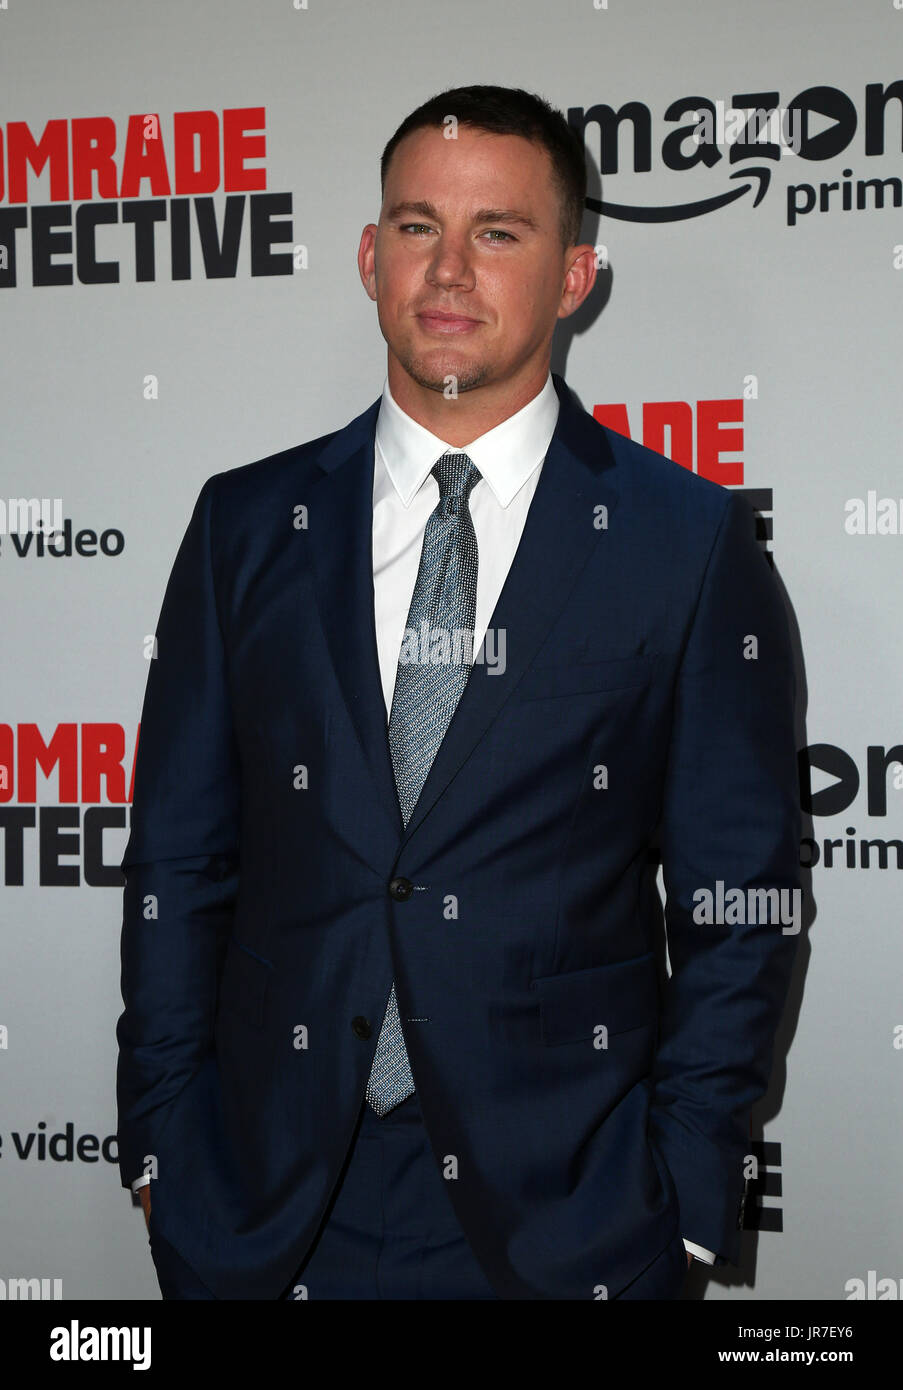 "Hollywood, Ca. 3. August 2017. Channing Tatum, bei Premiere von Amazons ""Genosse Detective' im ArcLight Hollywood In Kalifornien am 3. August 2017. Bildnachweis: Fs/Medien Punch/Alamy Live-Nachrichten Stockbild"